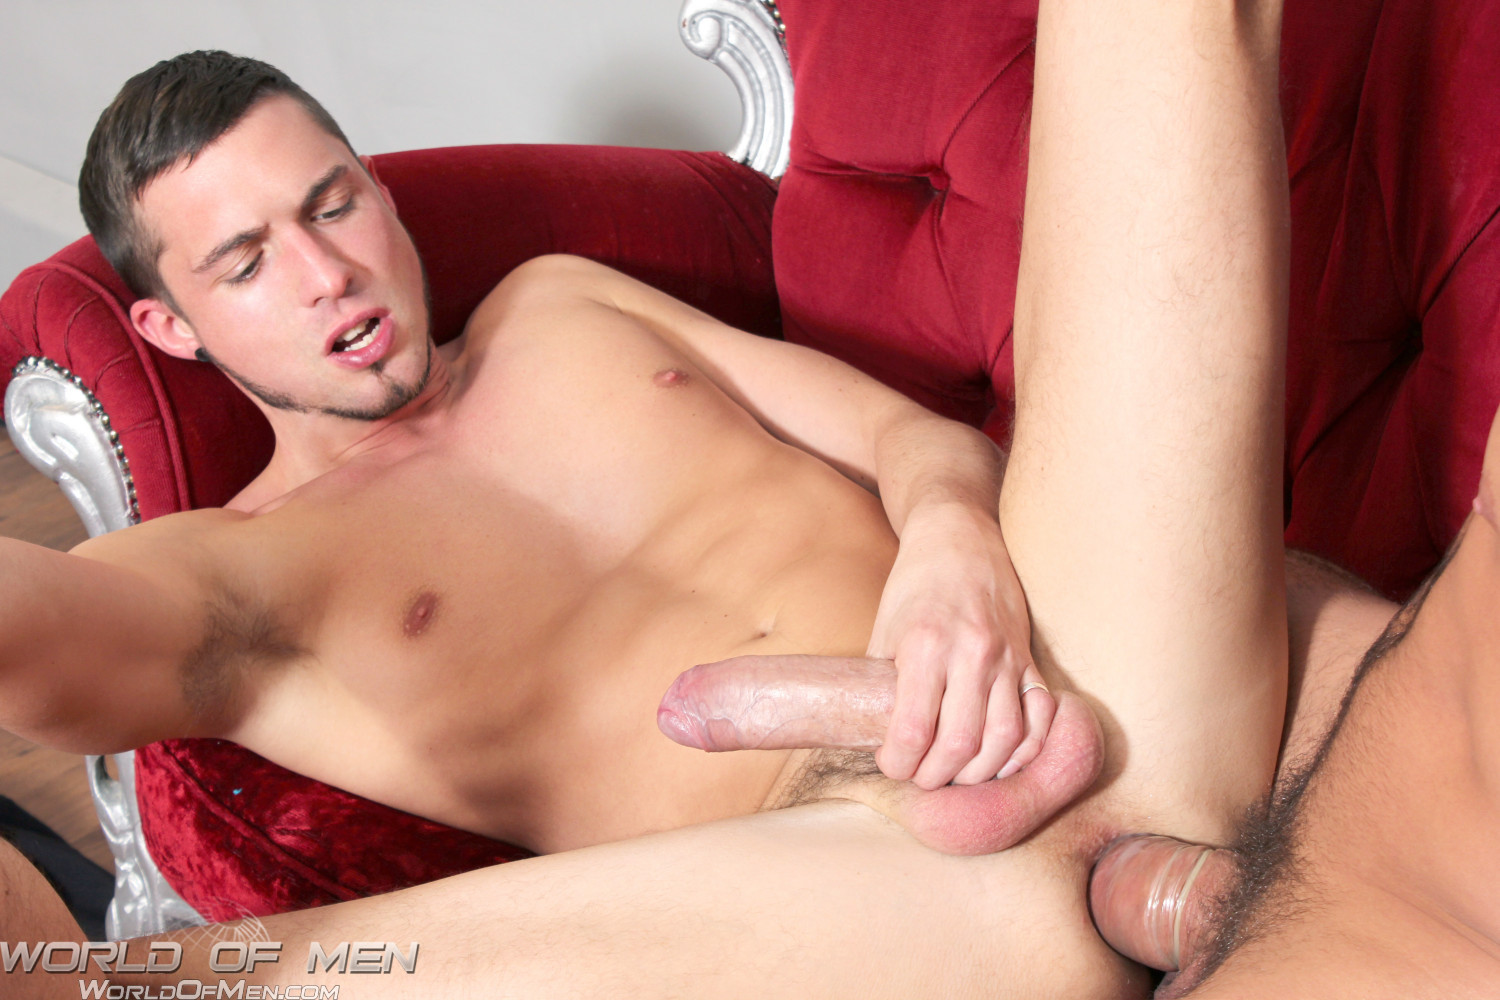 World of Men Dominic Pacifico and Sam Barclay 07 Massively Thick Uncut Amateur Cocks Fucking and Cumming